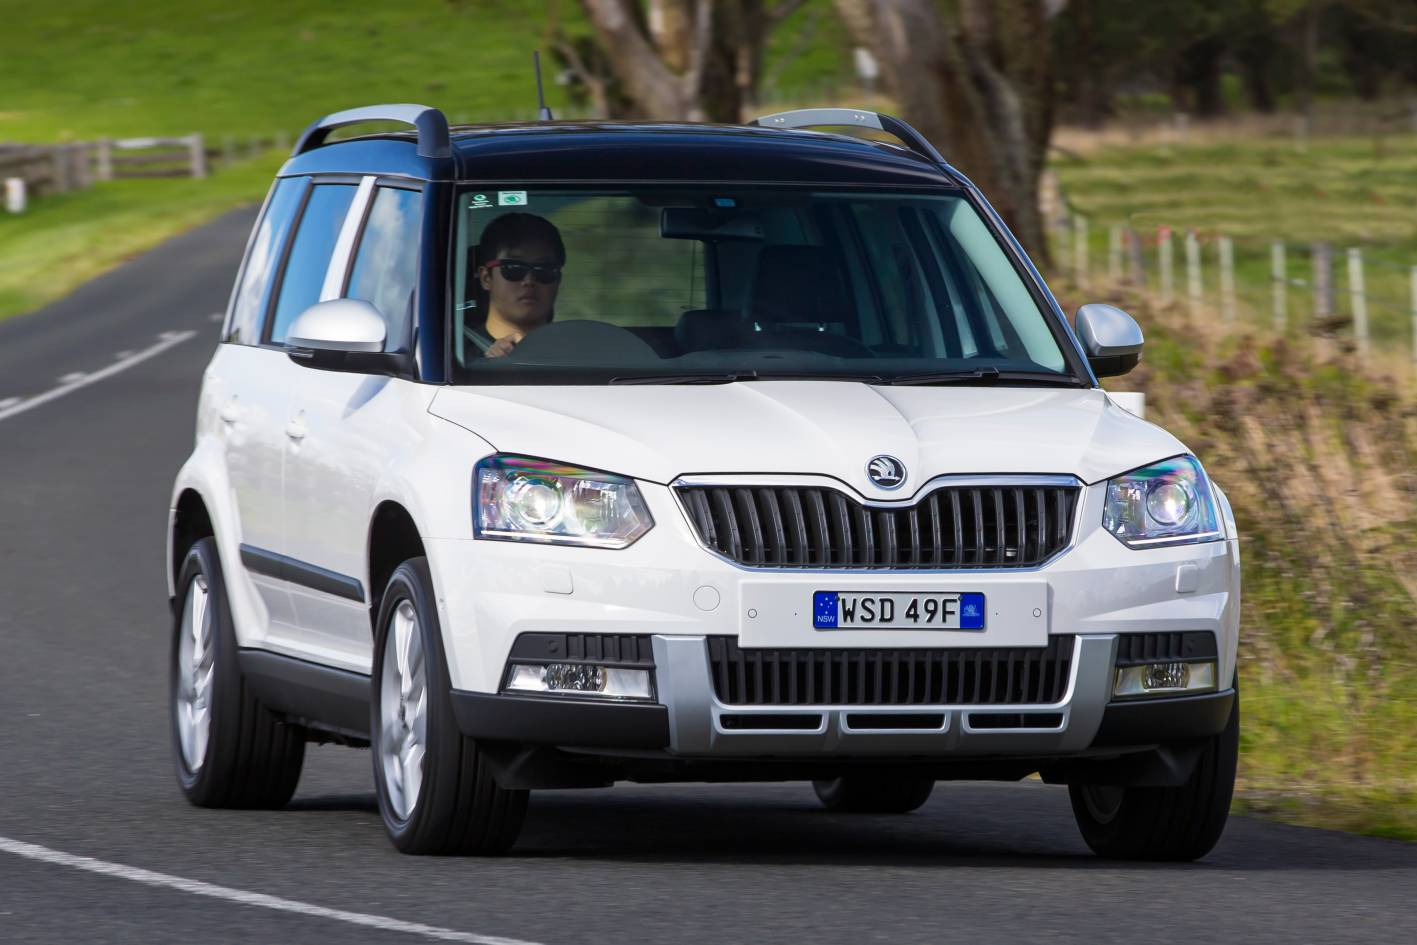 Skoda pumps up the power in Yeti